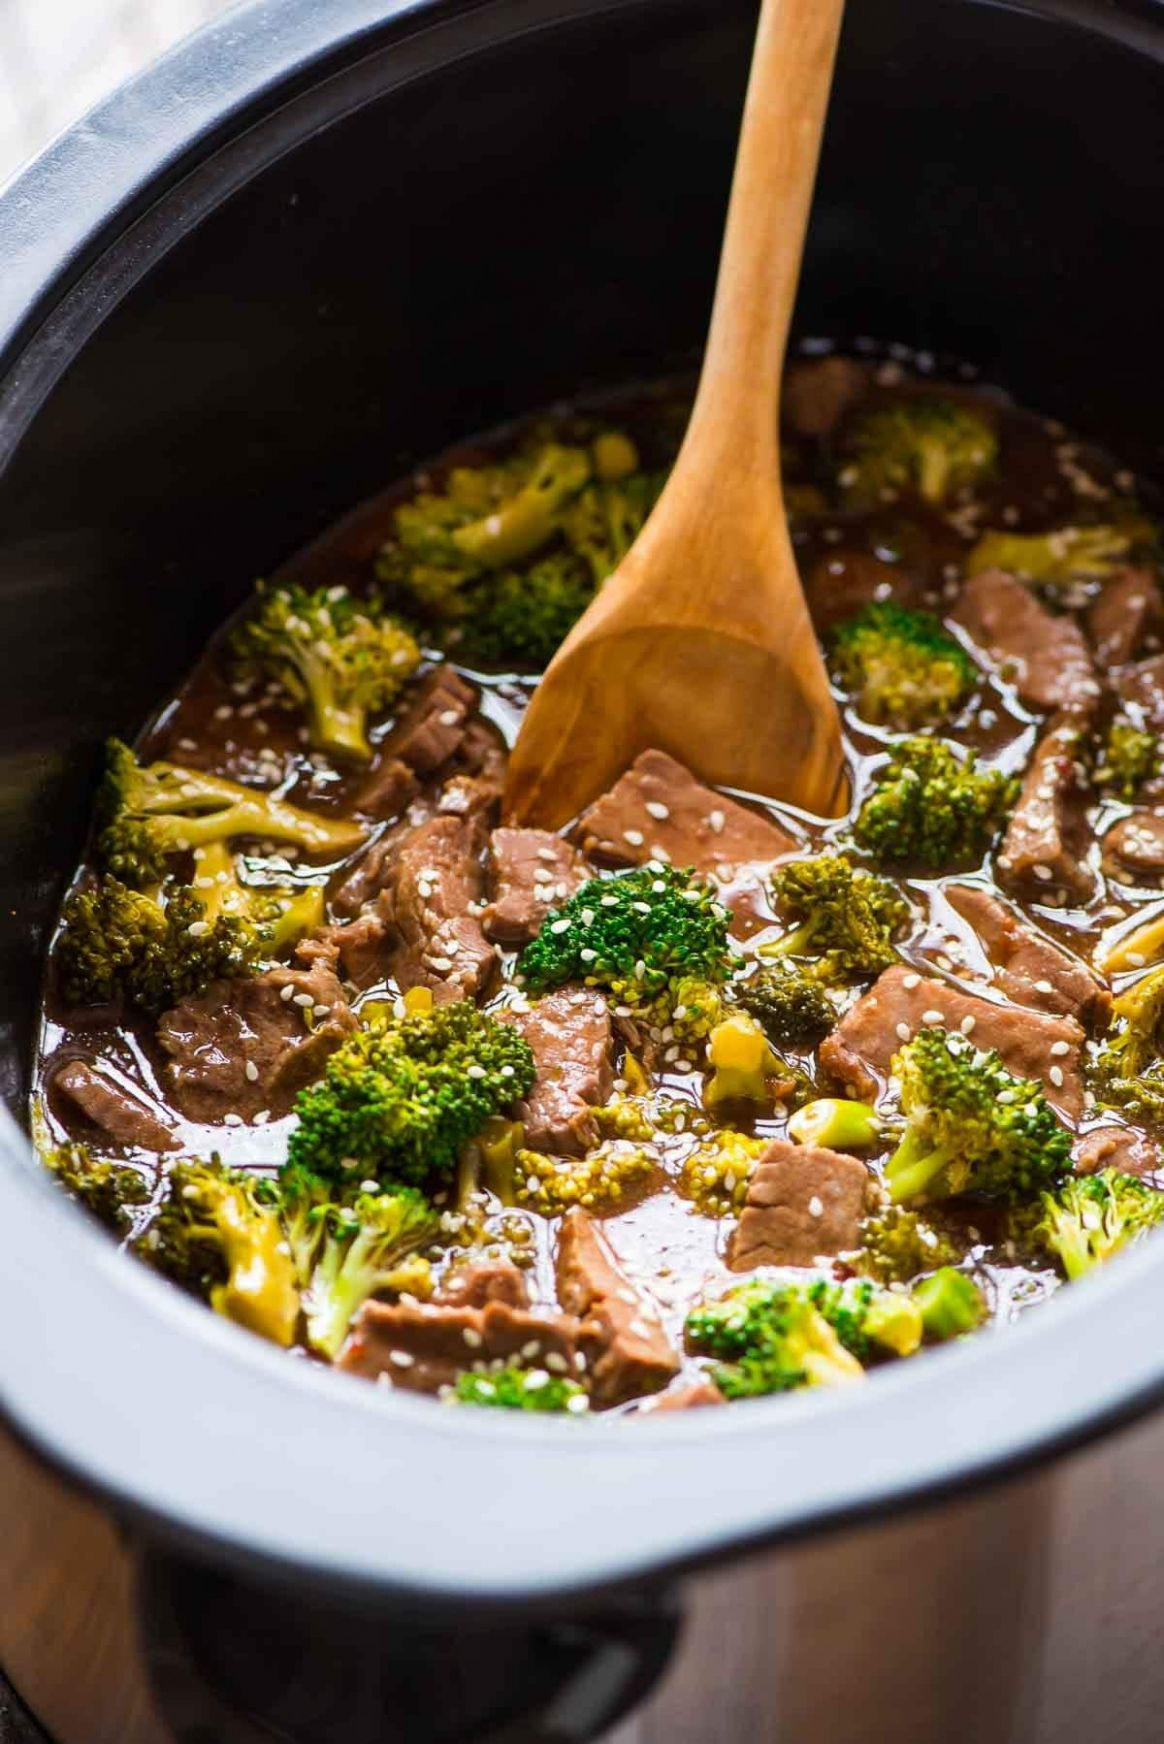 Crockpot Beef and Broccoli - Recipes Beef In Crock Pot